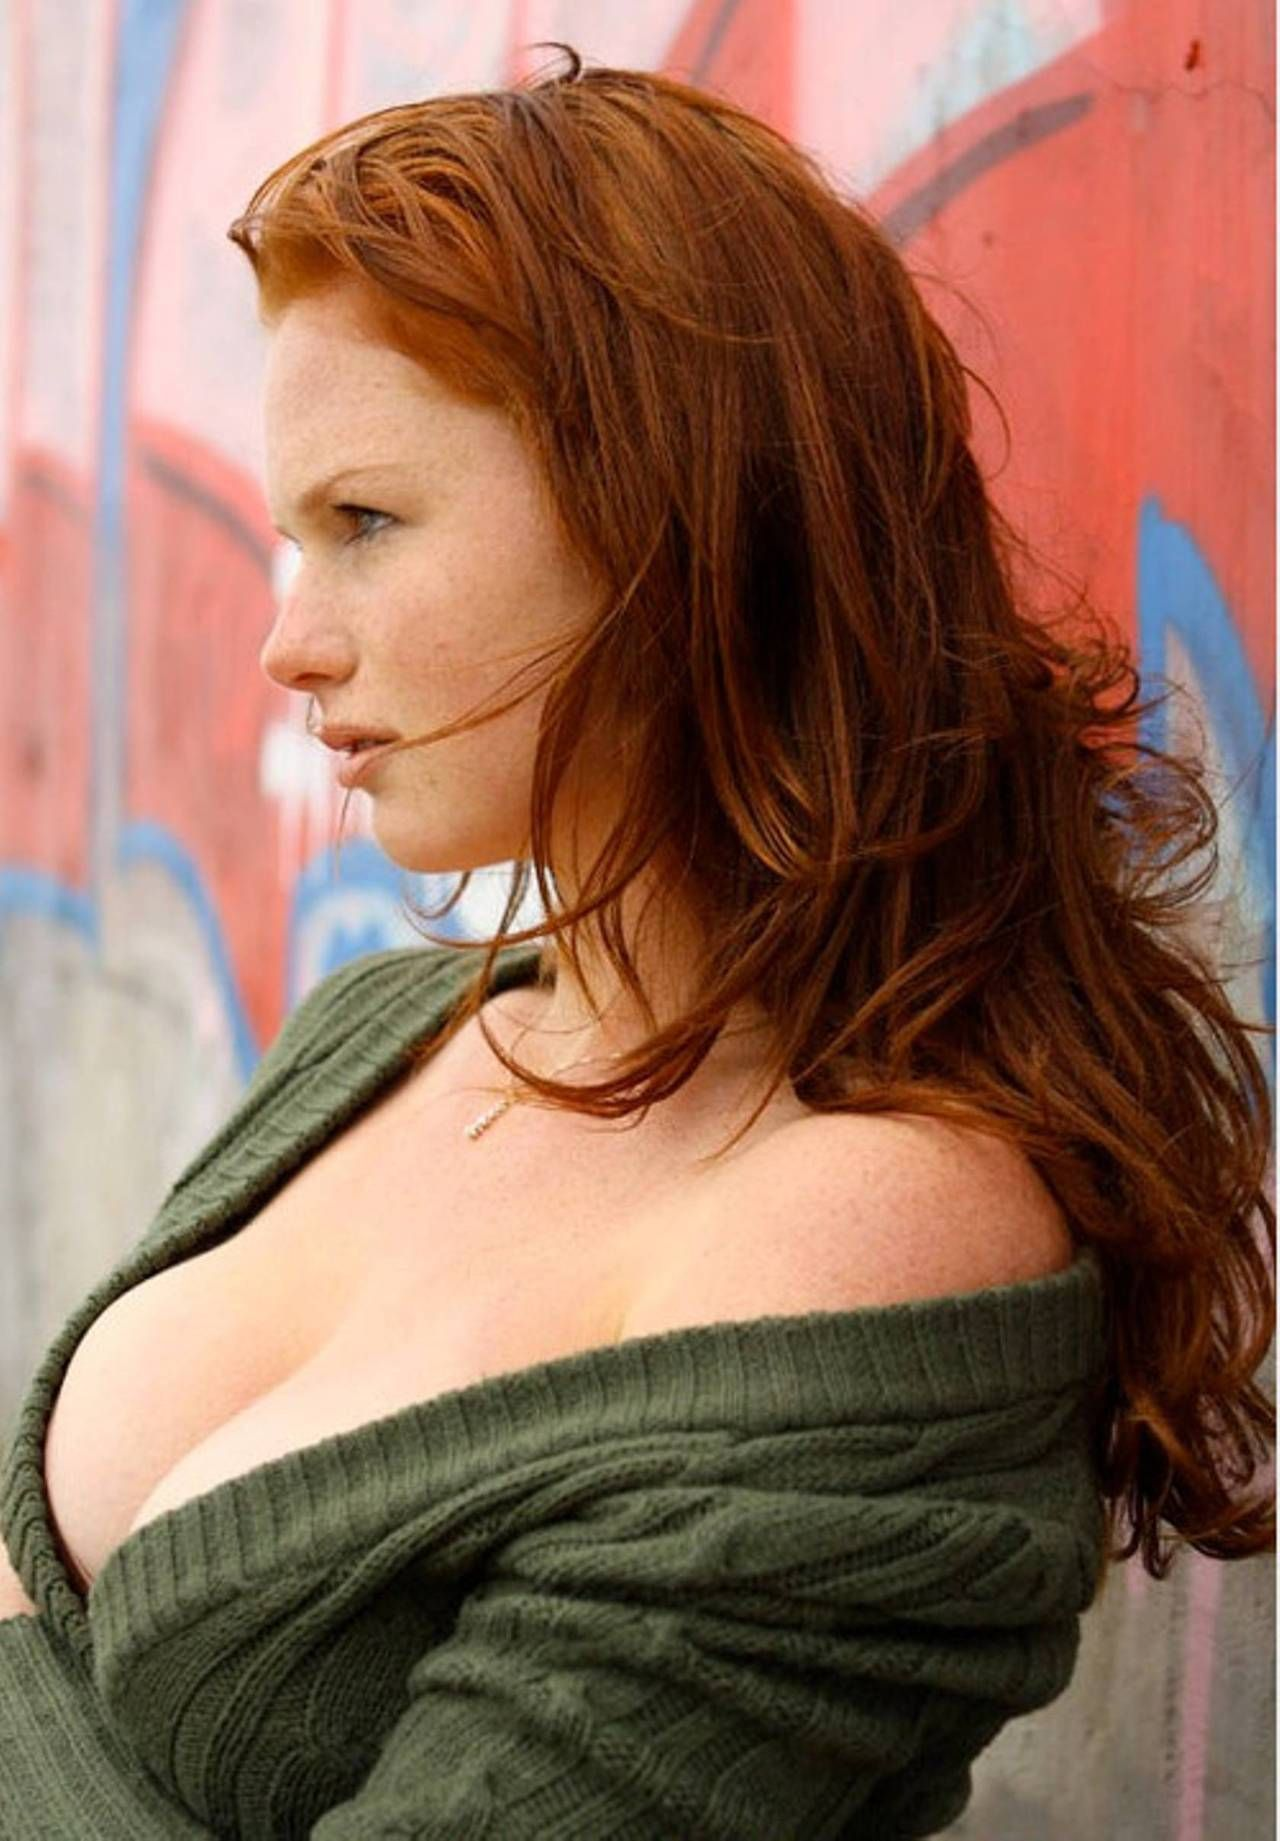 Pin on Busty Redheads 2